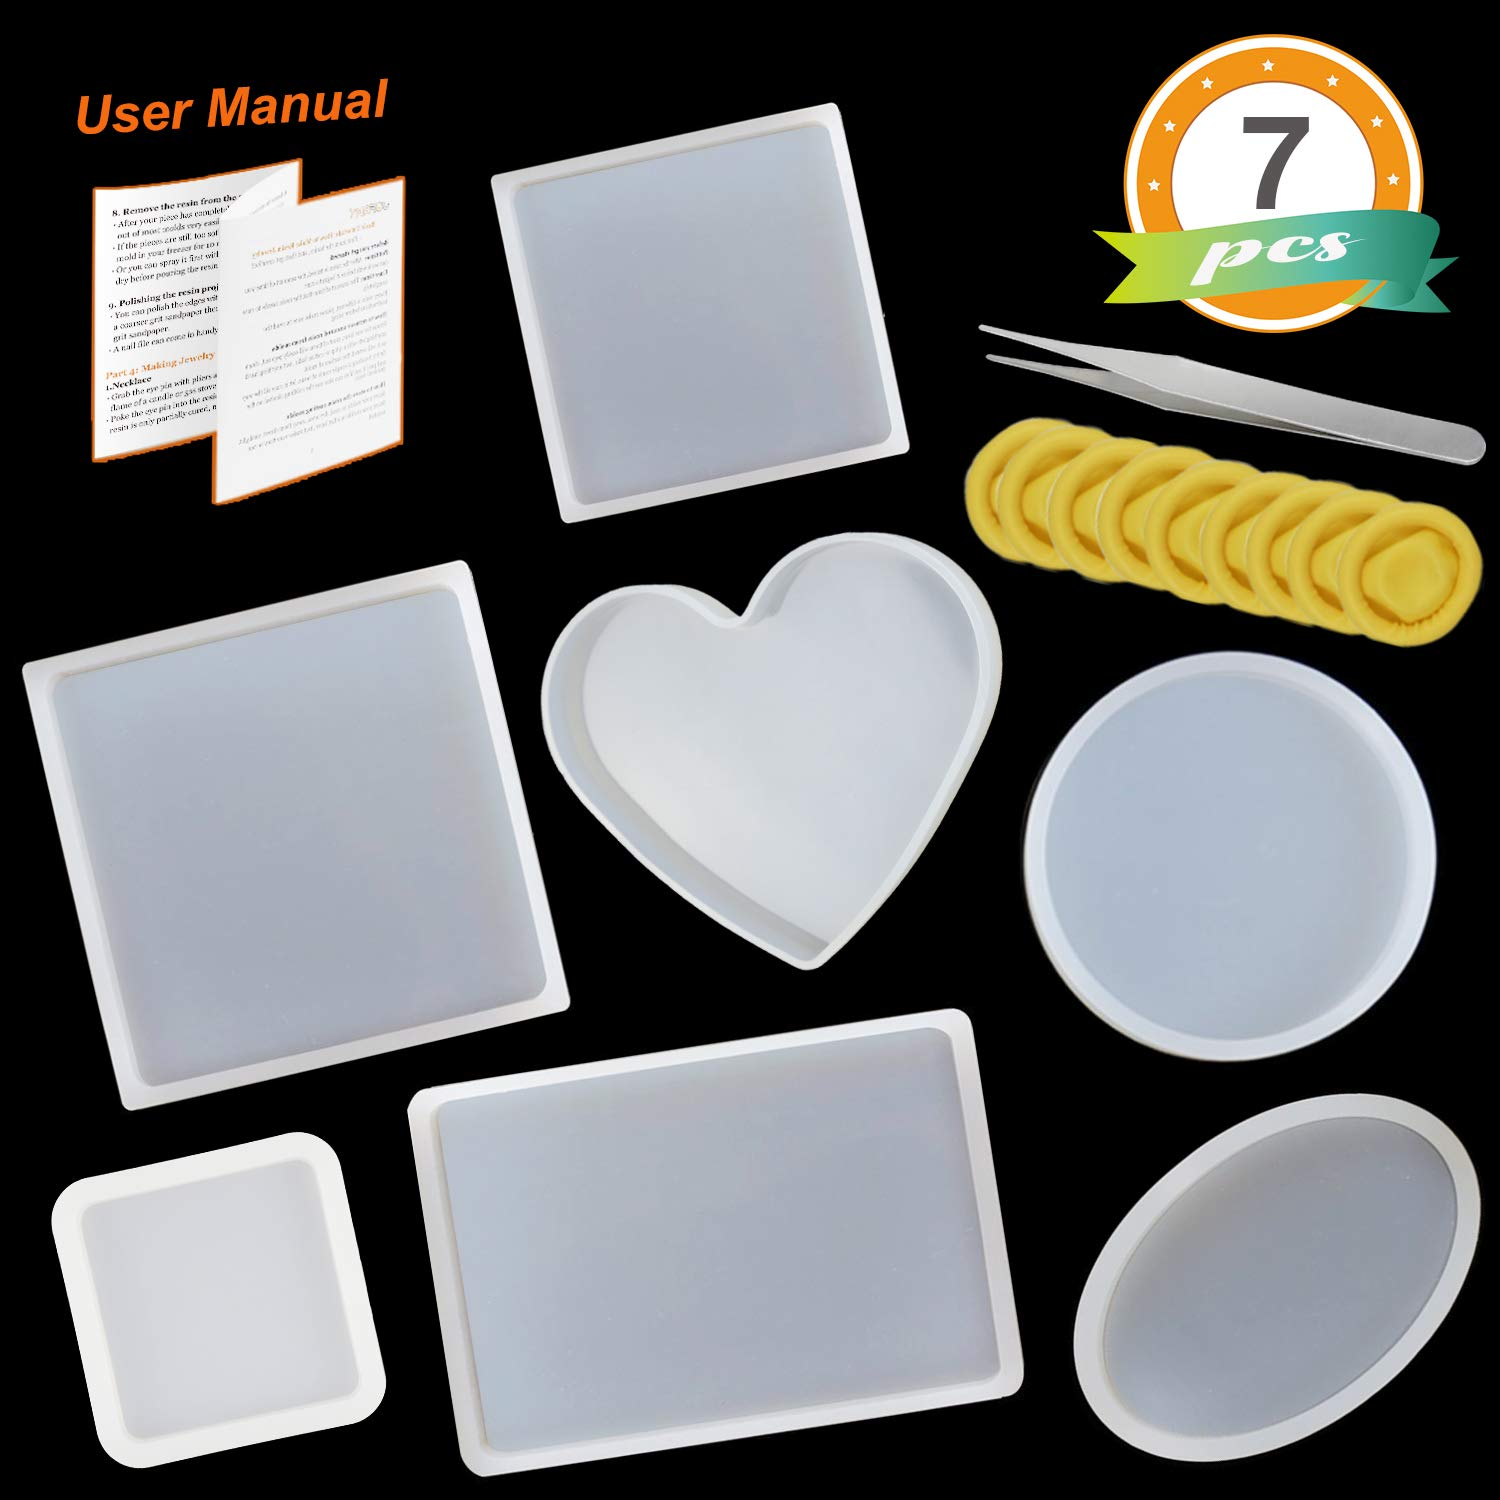 LET'S RESIN Silicone Resin Molds 7pcs Resin Casting Molds including Round, Square, Rectangle, Ellipse, Heart Coaster Molds, Epoxy Resin Molds for DIY Coasters, Home Decoration & Christmas Gift by LET'S RESIN